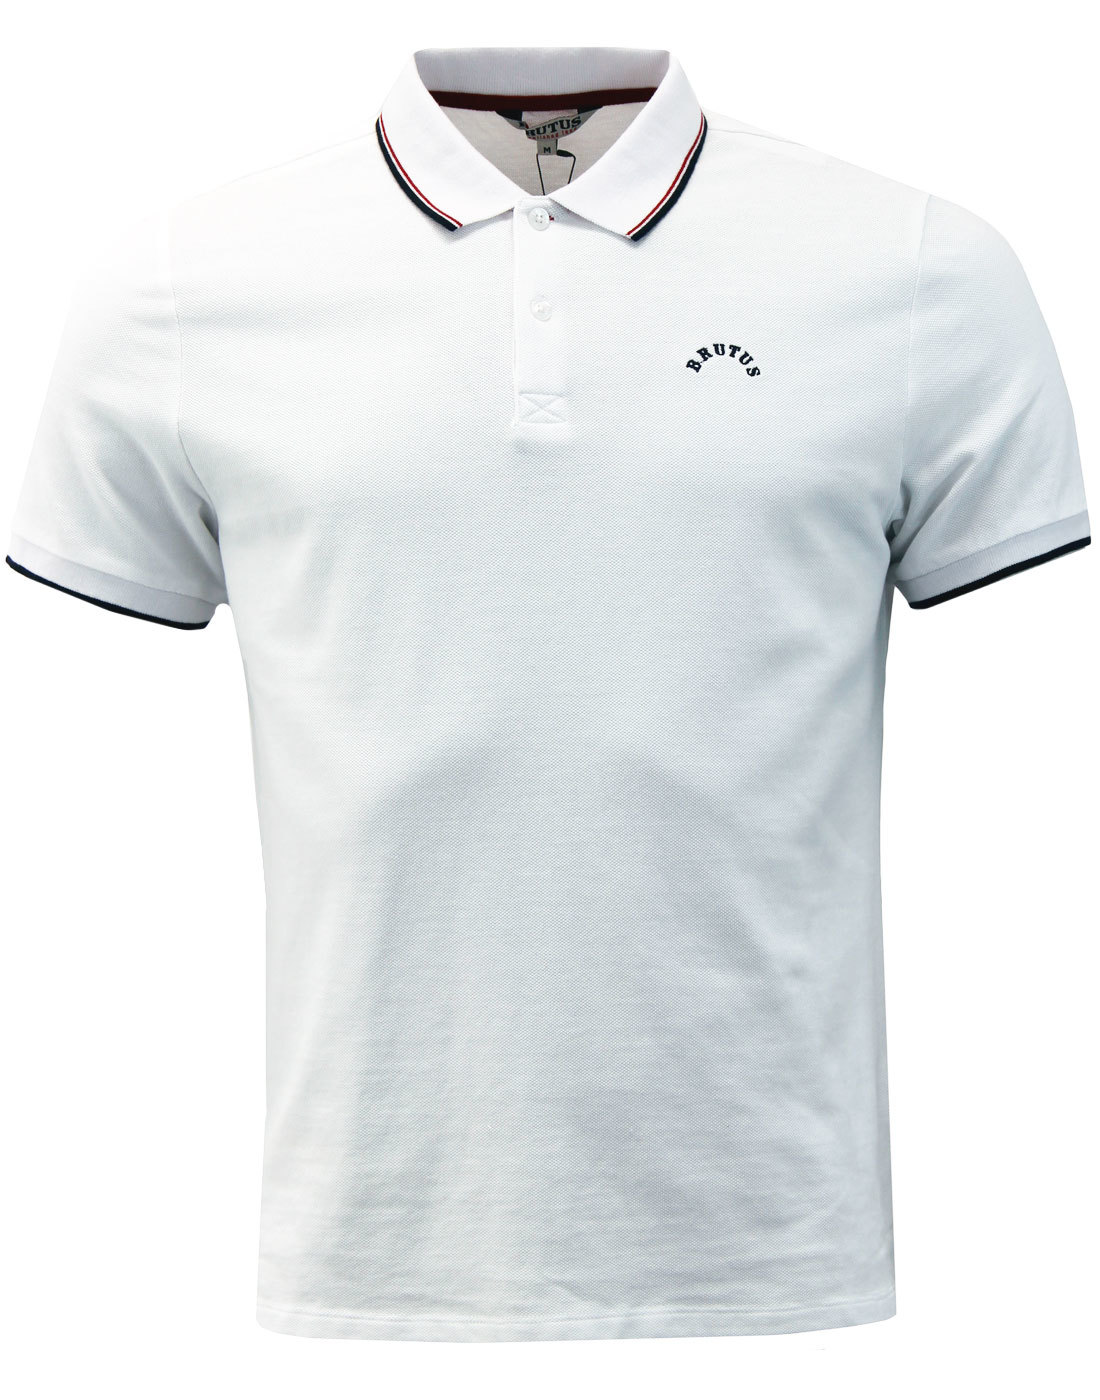 BRUTUS TRIMFIT Mod Twin Tipped Pique Polo Shirt W